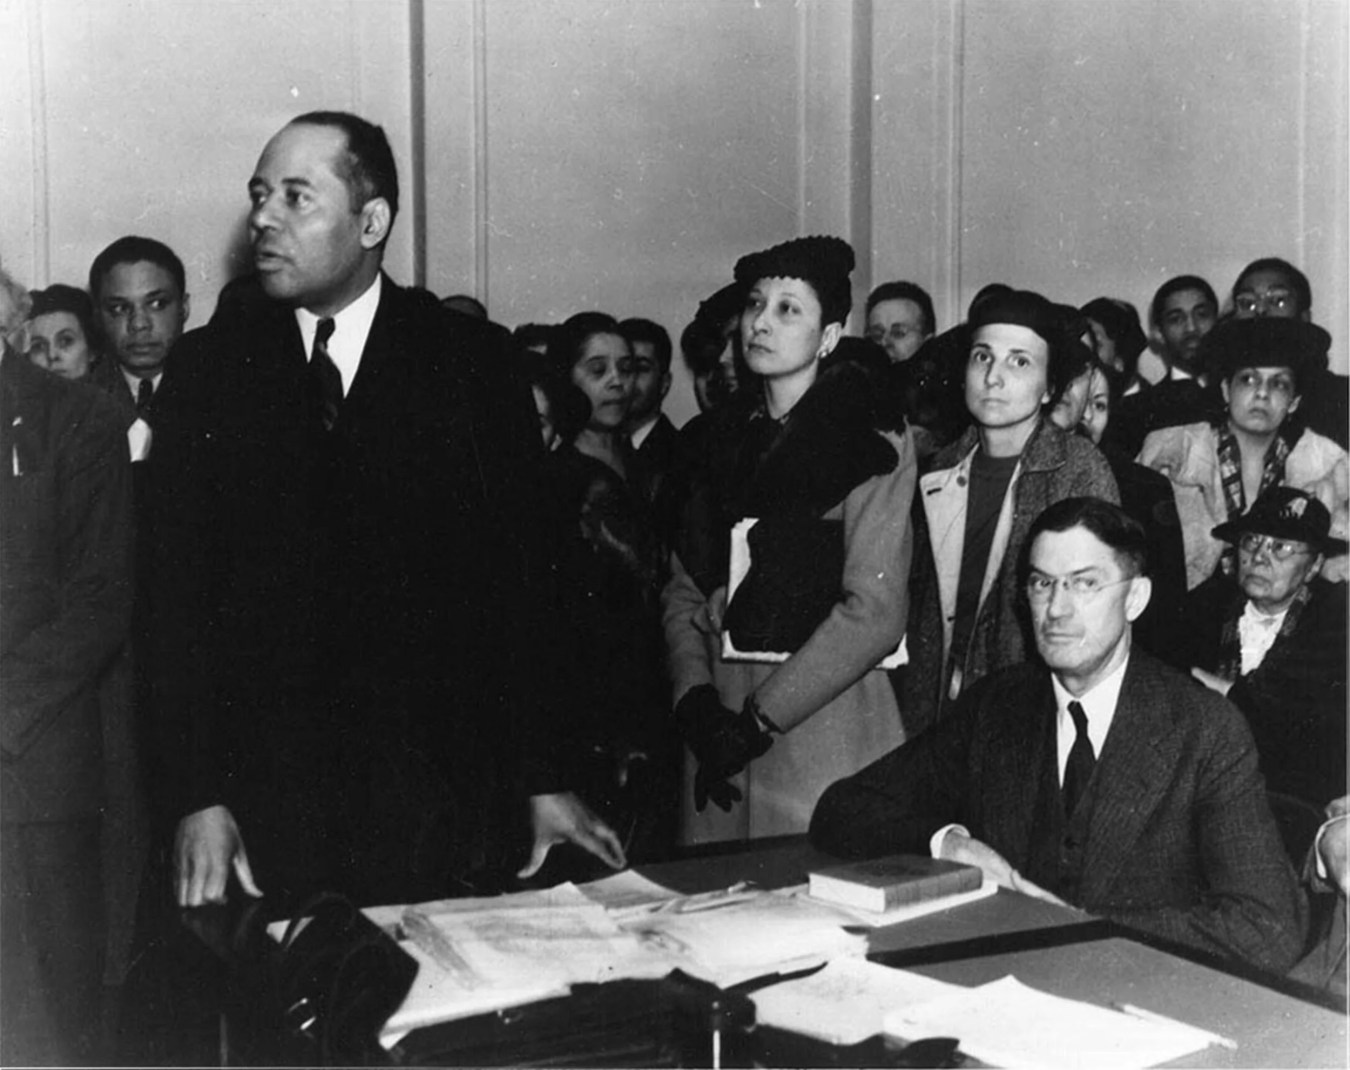 Houston (left) delivers oral arguments in court. Courtesy of the Charles Hamilton Houston Institute for Race and Justice at Harvard Law School